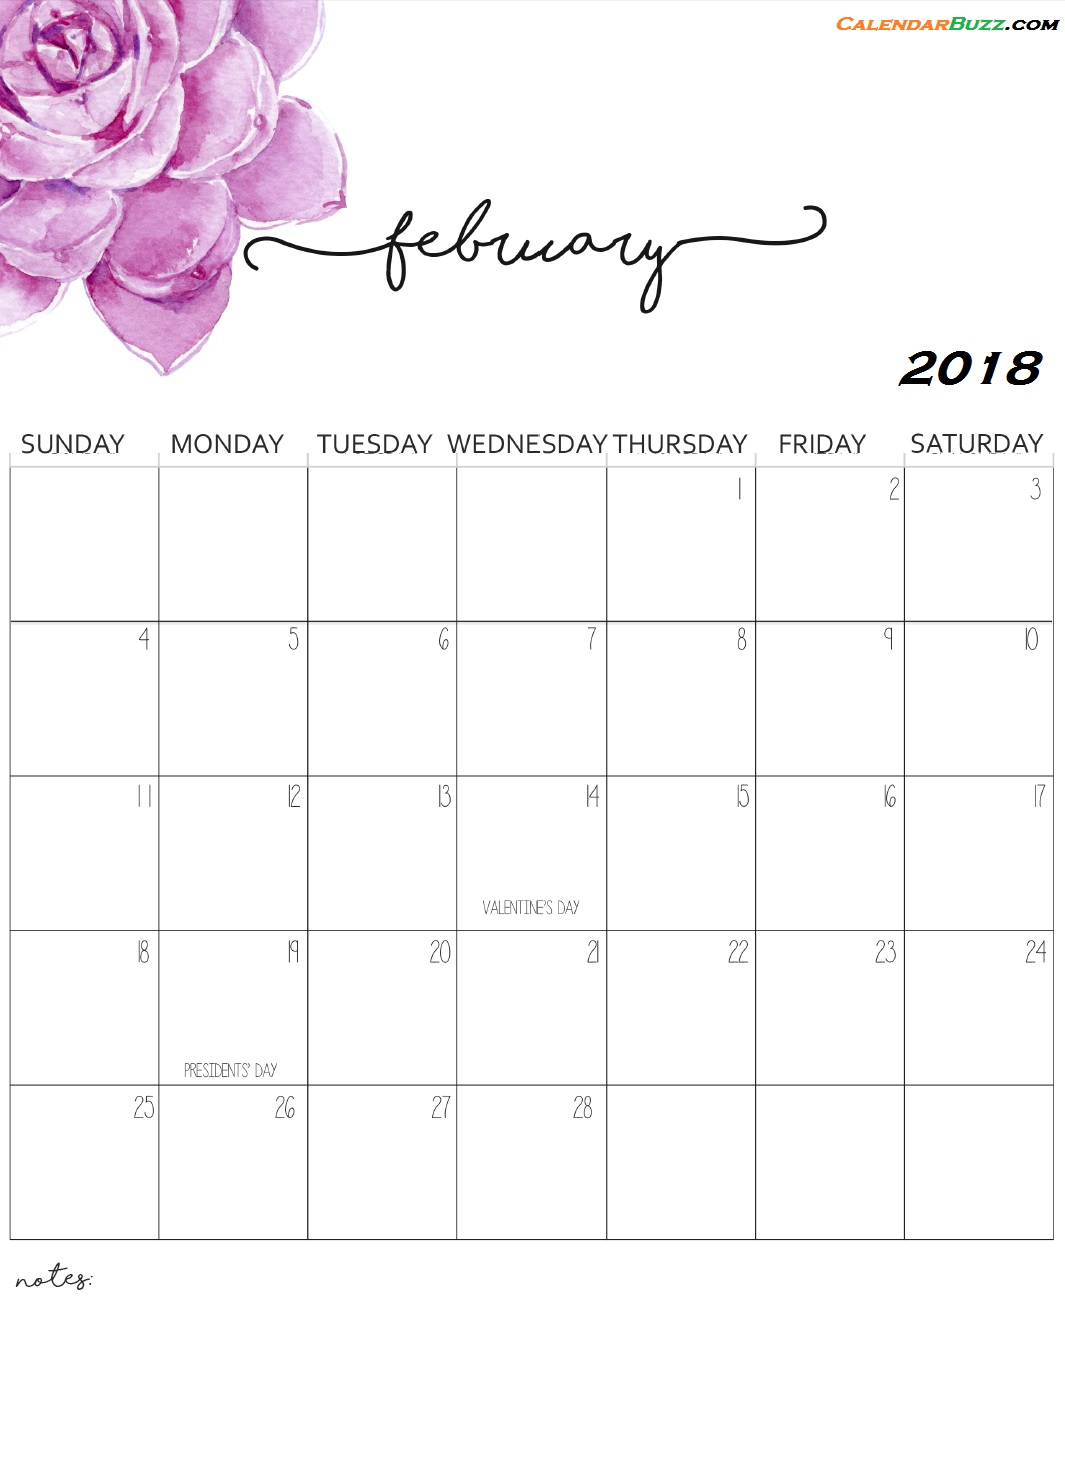 Monthly Wall Calendar 2018 February